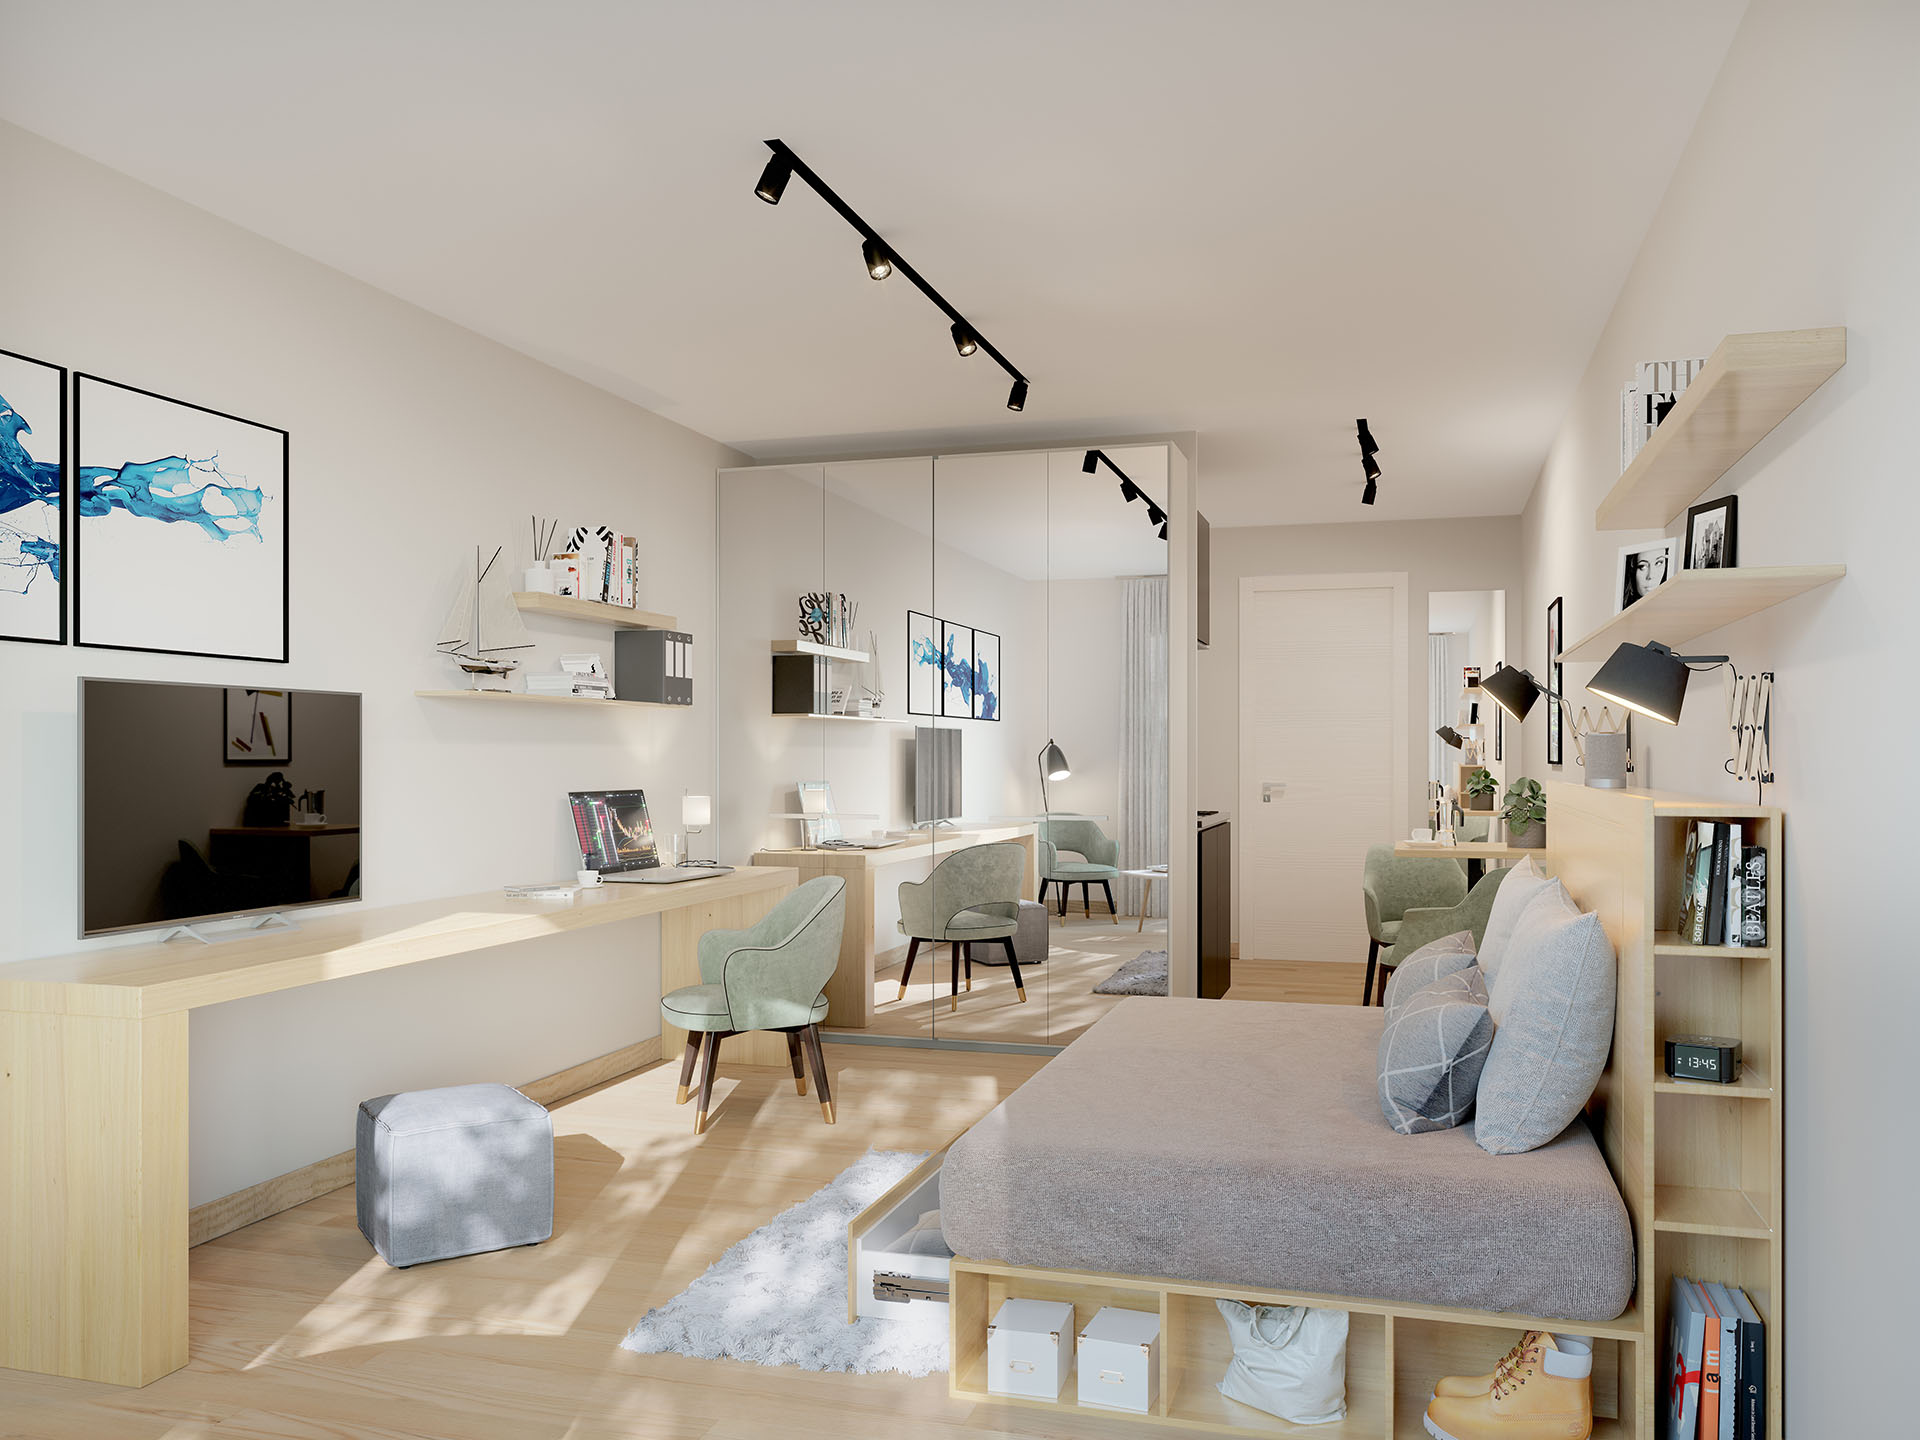 New and modern studio realized in 3D